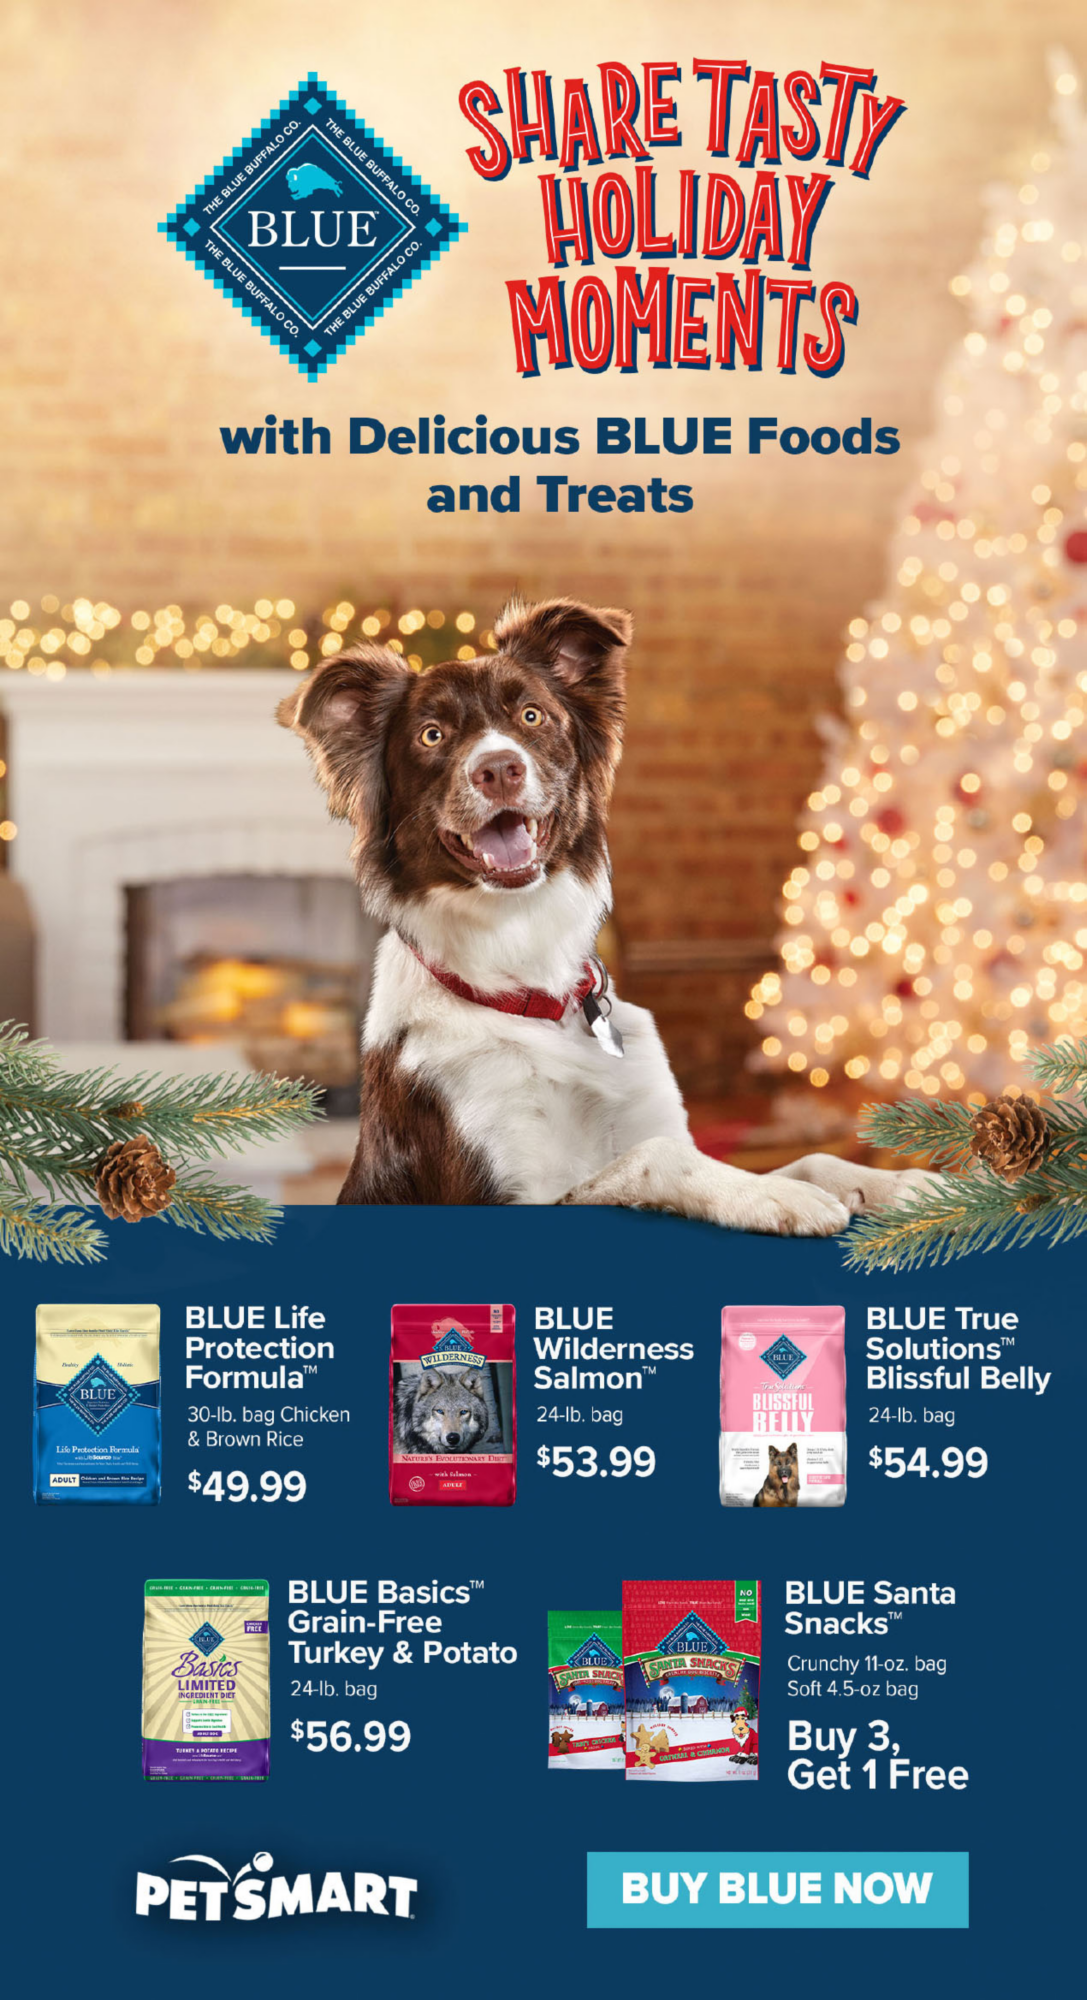 SHARE TASTY HOLIDAY MOMENTS with Delicious BLUE Foods and Treats                         BLUE Life Protection Formula™ 30-lb. bag  Chicken & Brown Rice $49.99                         BLUE Wilderness Salmon™ 24-lb. bag $53.99                         BLUE True Solutions™ Blissful Belly 24-lb. bag $54.99                         BLUE Basics™ Grain-Free Turkey & Potatoe 24-lb. bag $56.99                         BLUE Santa Snaxks™ Crunchy 11-oz. bag Soft 4.5-oz bag Buy 3 Get 1 Free                                                   BUY BLUE NOW